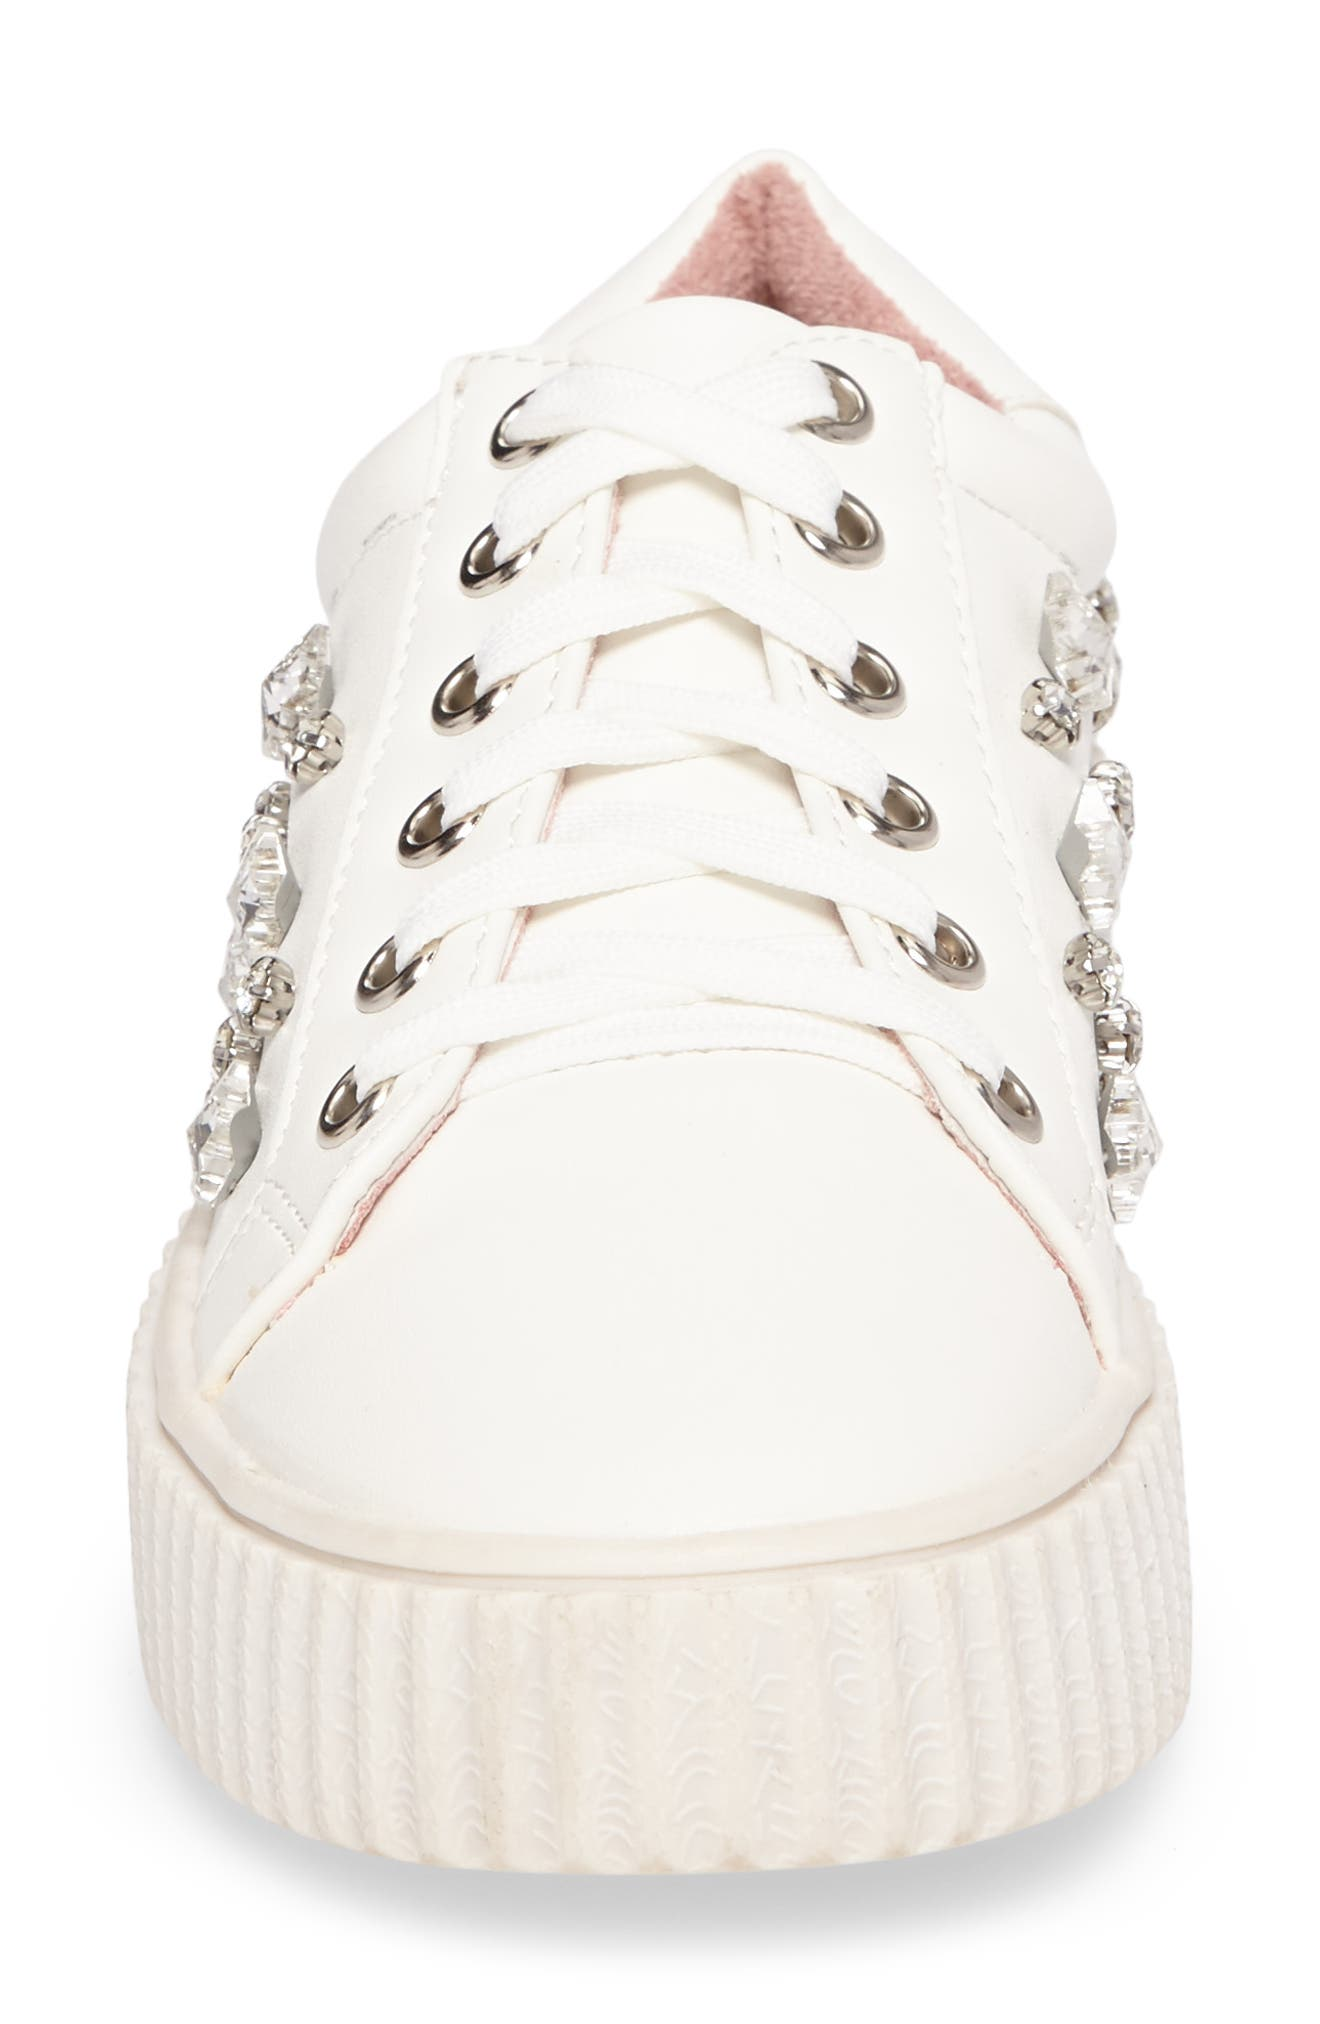 Pam Embellished Platform Sneaker,                             Alternate thumbnail 4, color,                             WHITE